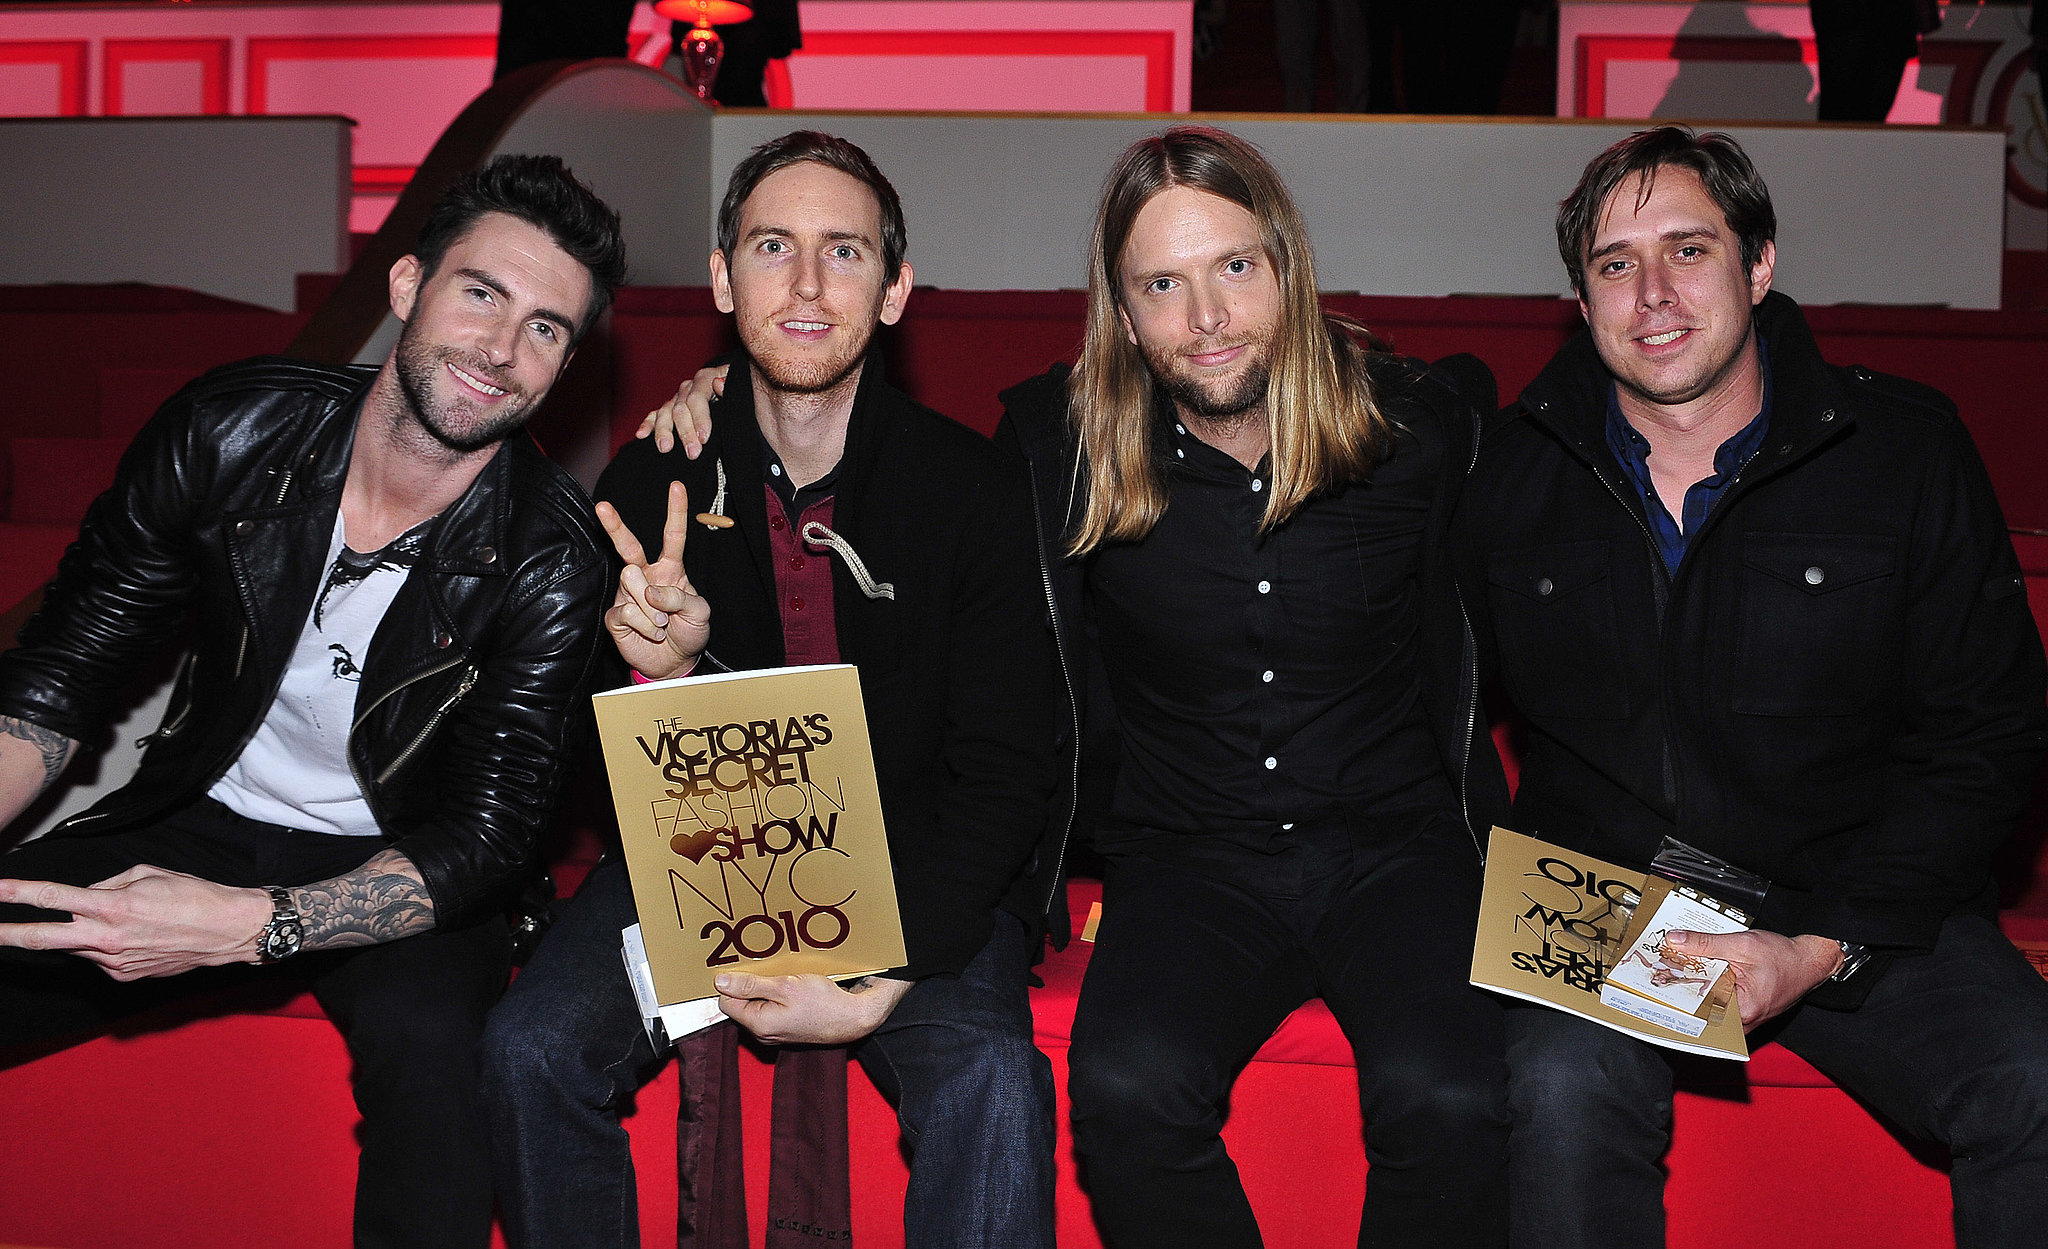 The guys of Maroon 5 were snapped in their seats before the show in 2010.